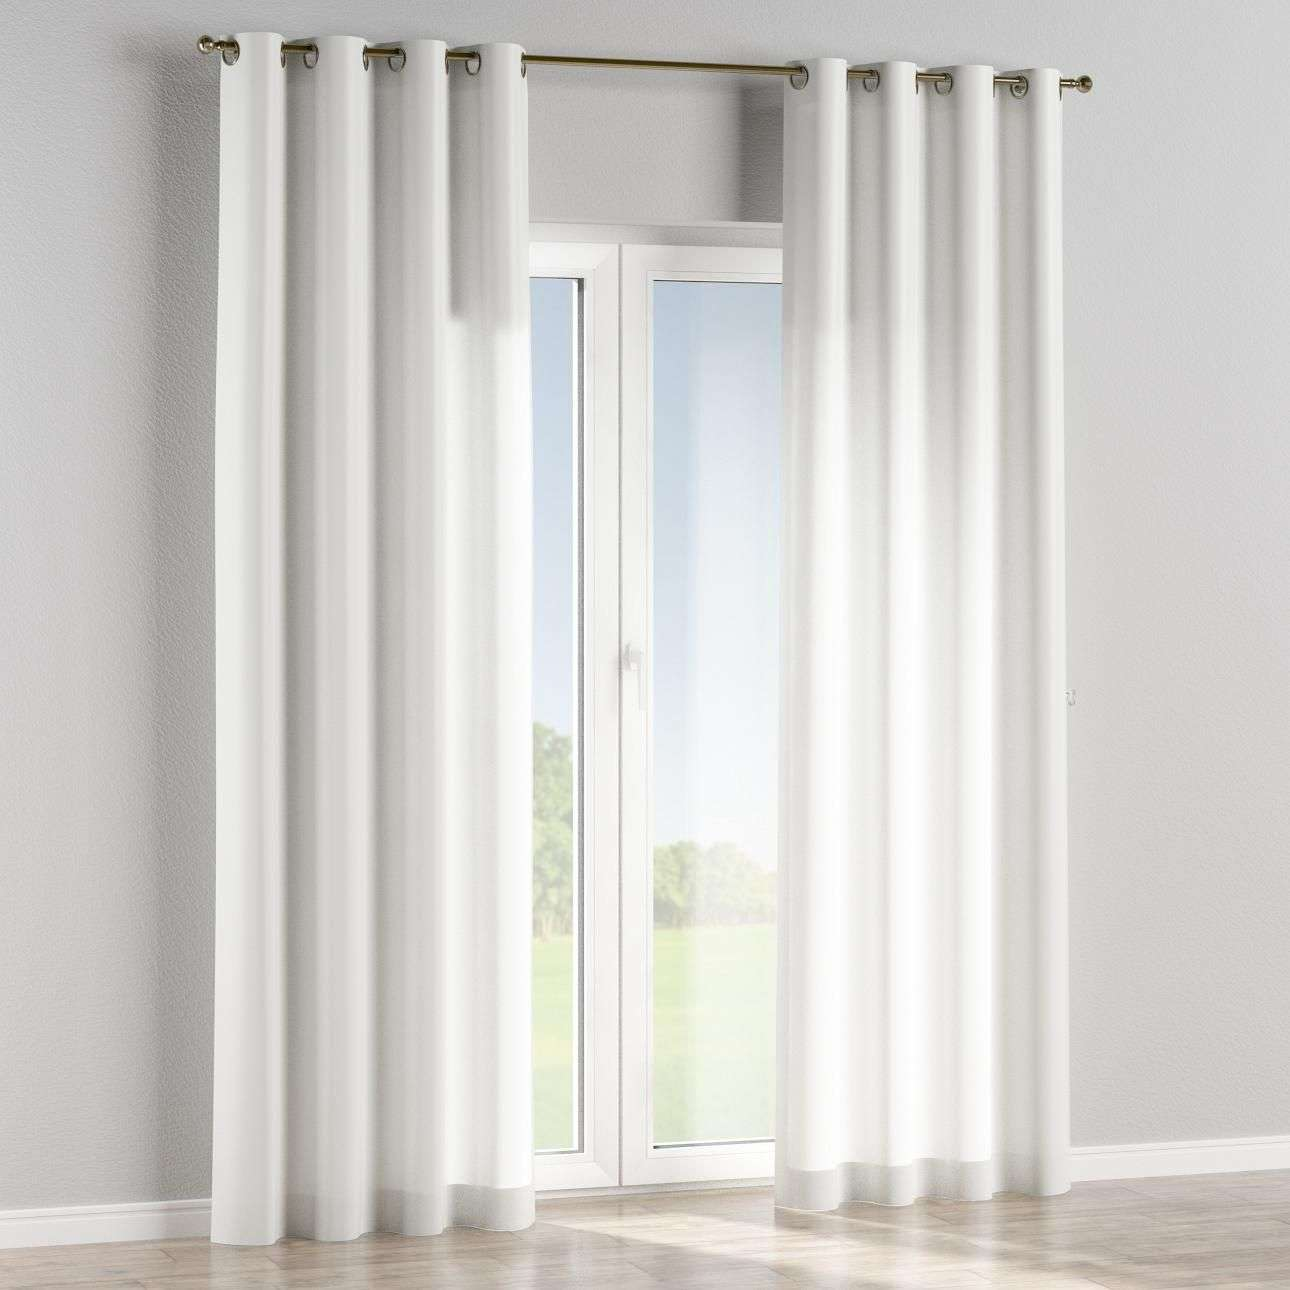 Eyelet curtains in collection Marina, fabric: 140-14